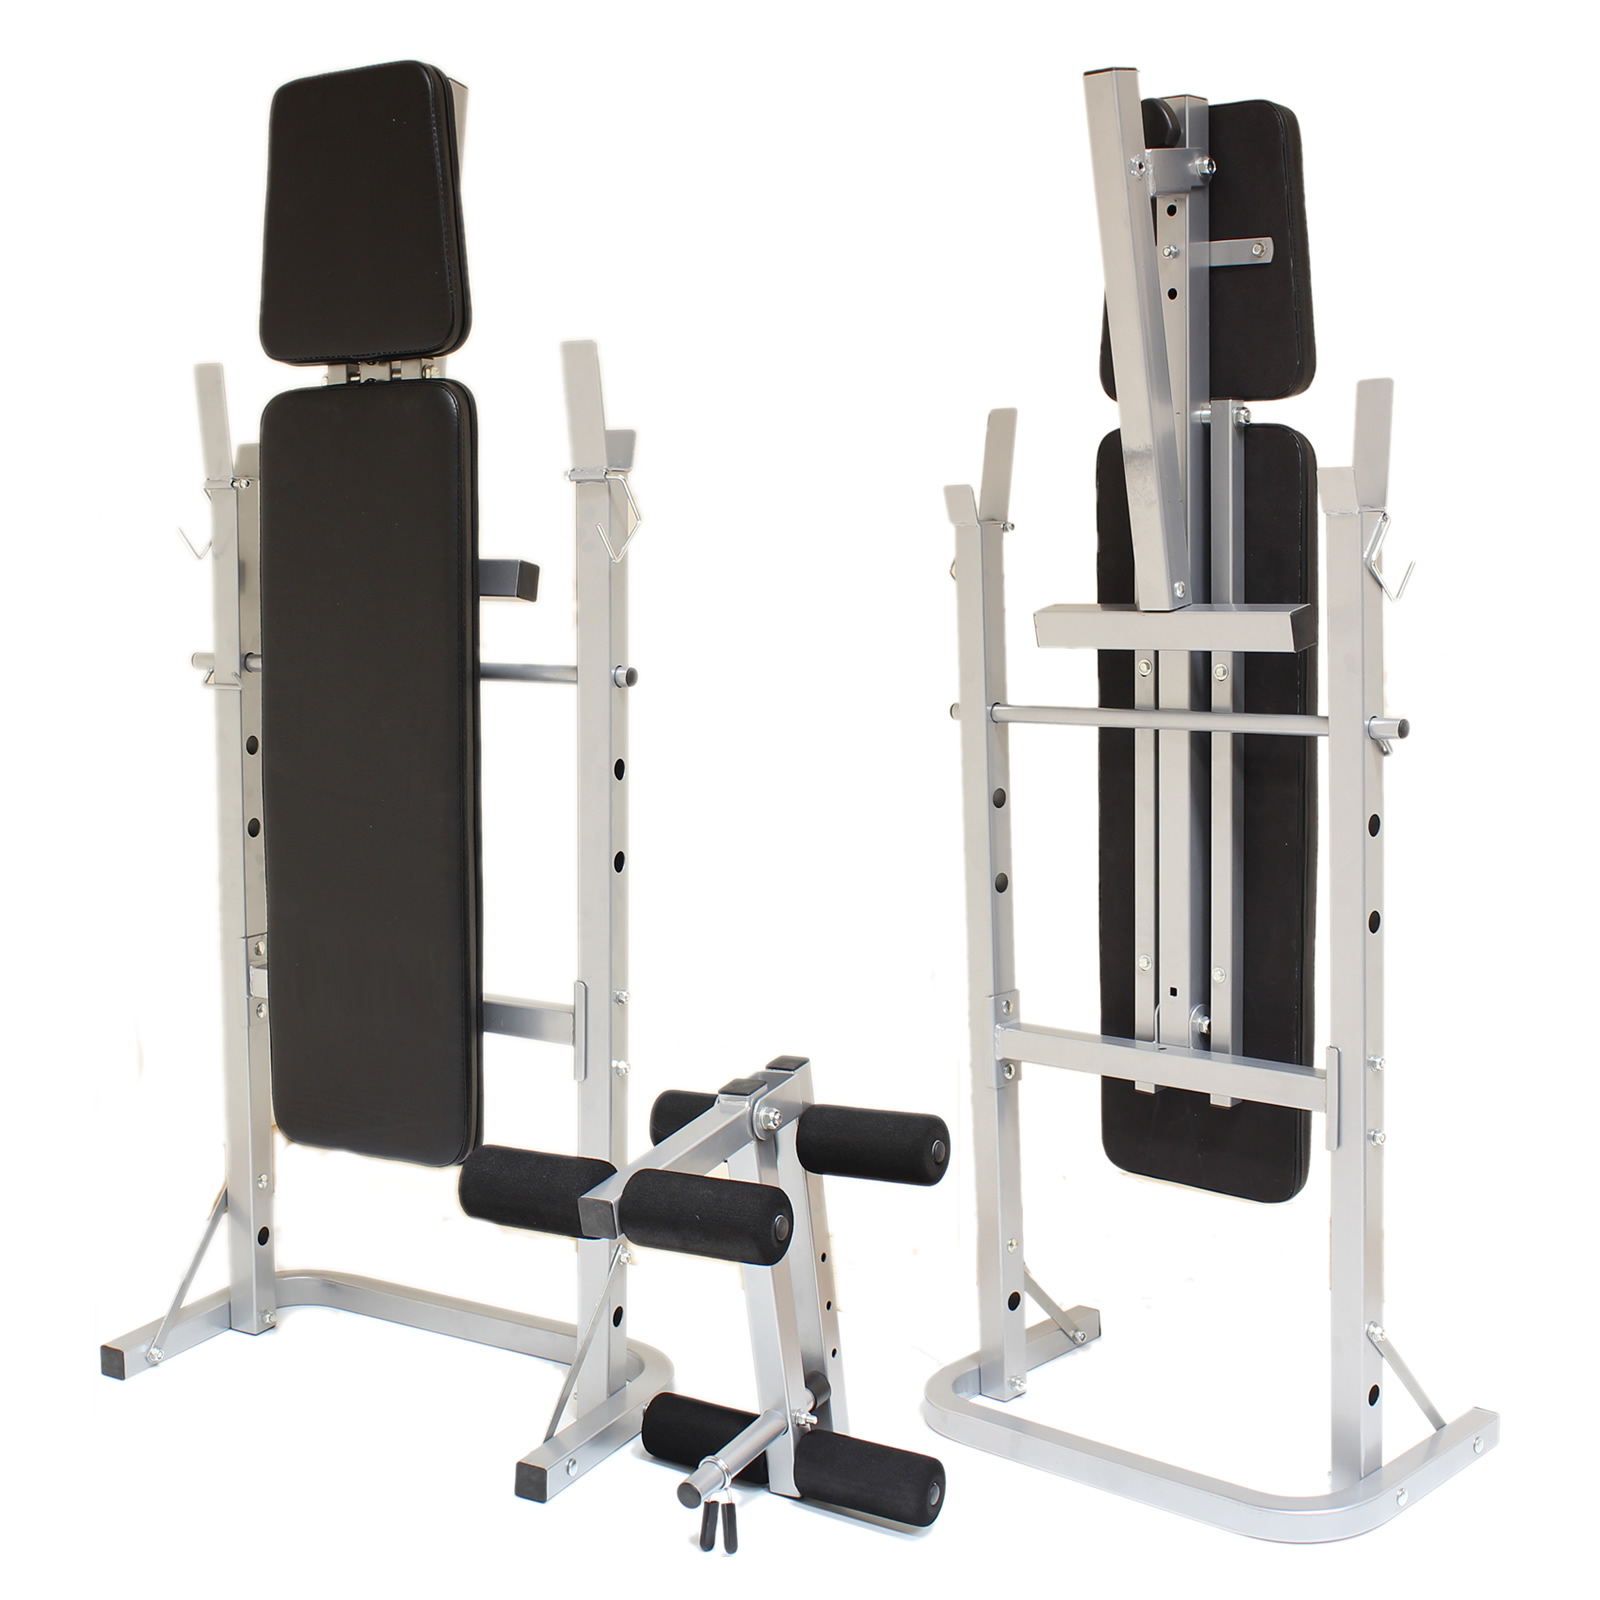 Sale Folding Weight Bench Exercise Lift Lifting Chest Press Leg Missing Parts Ebay